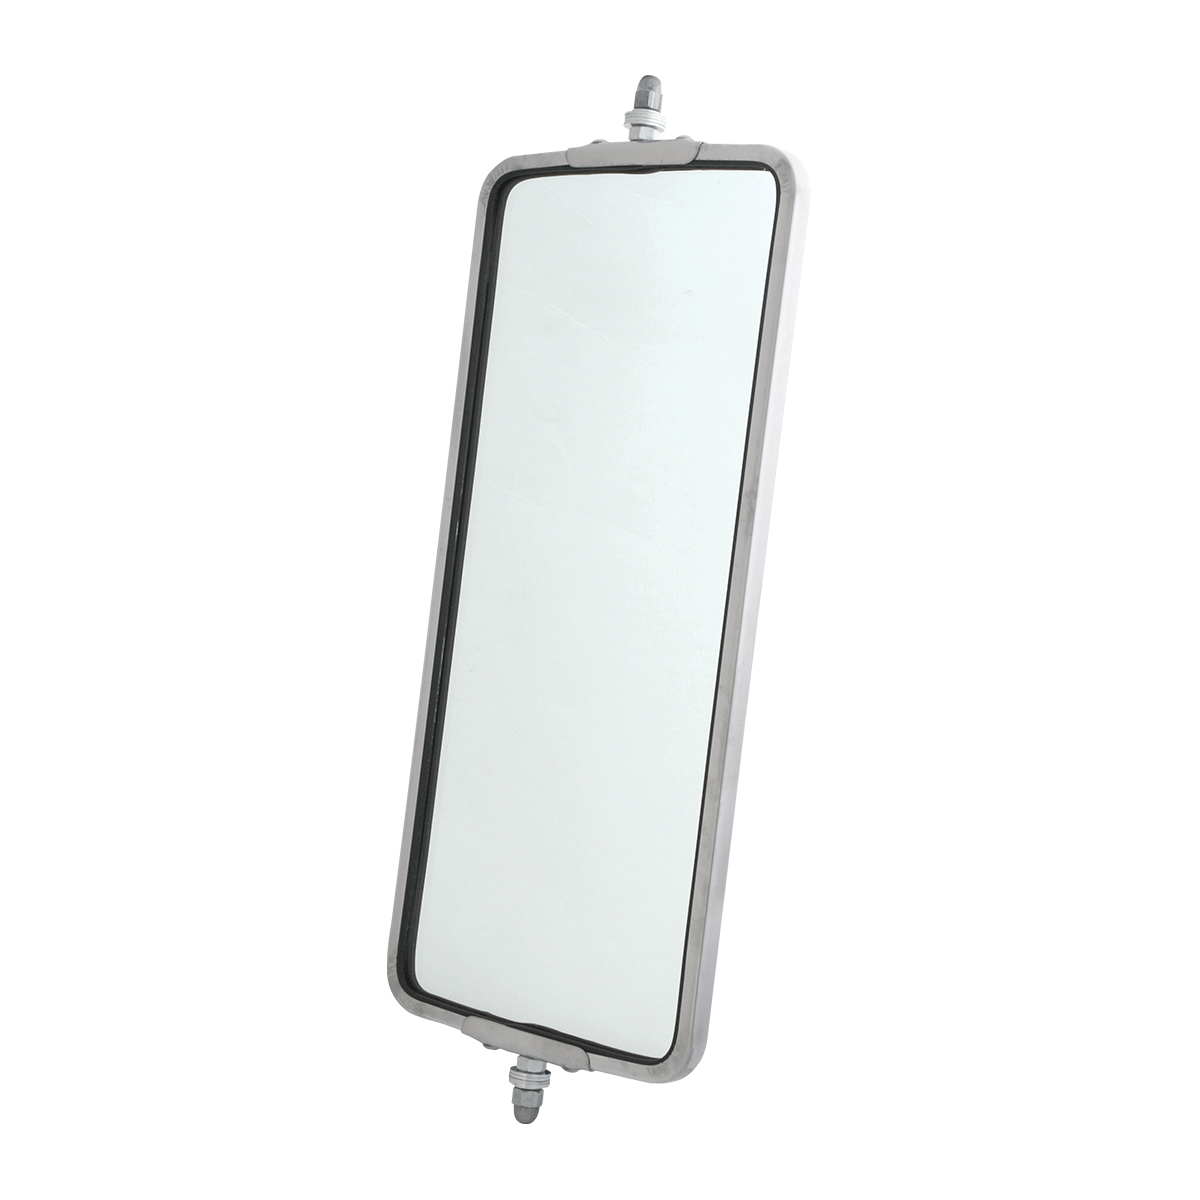 33310 OEM Style Stainless Steel West Coast Mirror with Heating Function